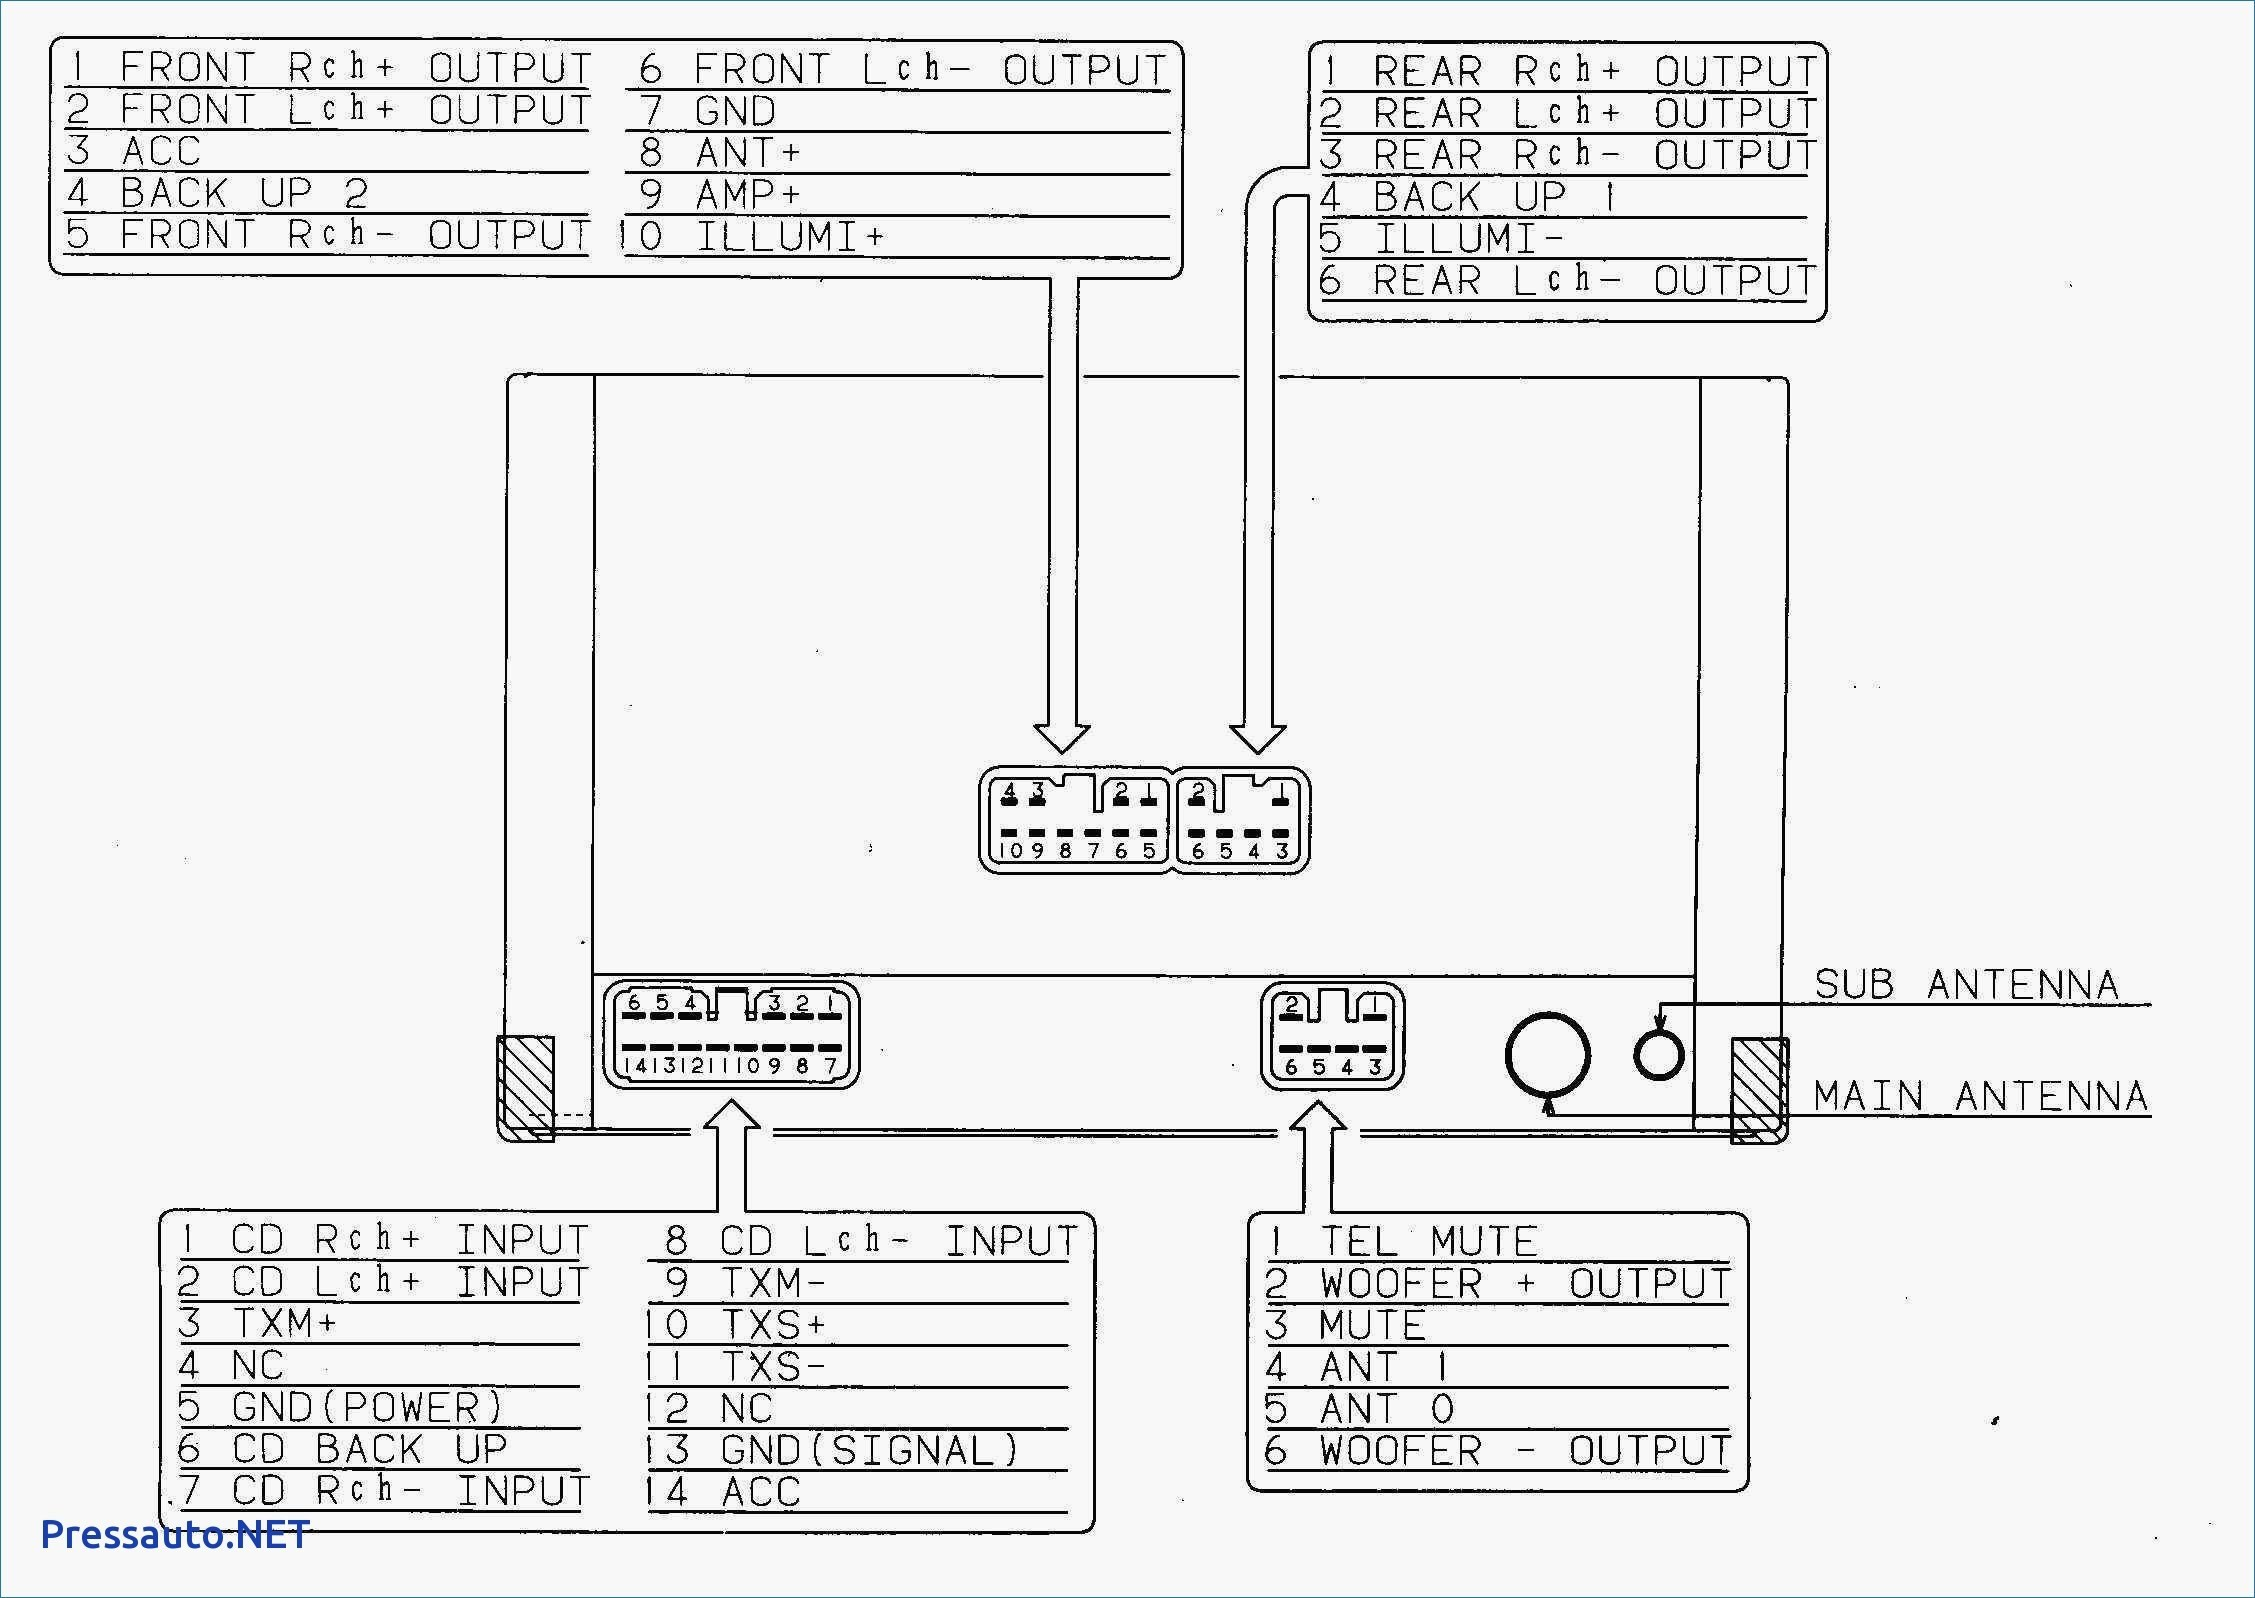 Wiring Diagram for Car Stereo with Amplifier Best Amplifier Wiring Diagram Diagram Of Wiring Diagram for Car Stereo with Amplifier